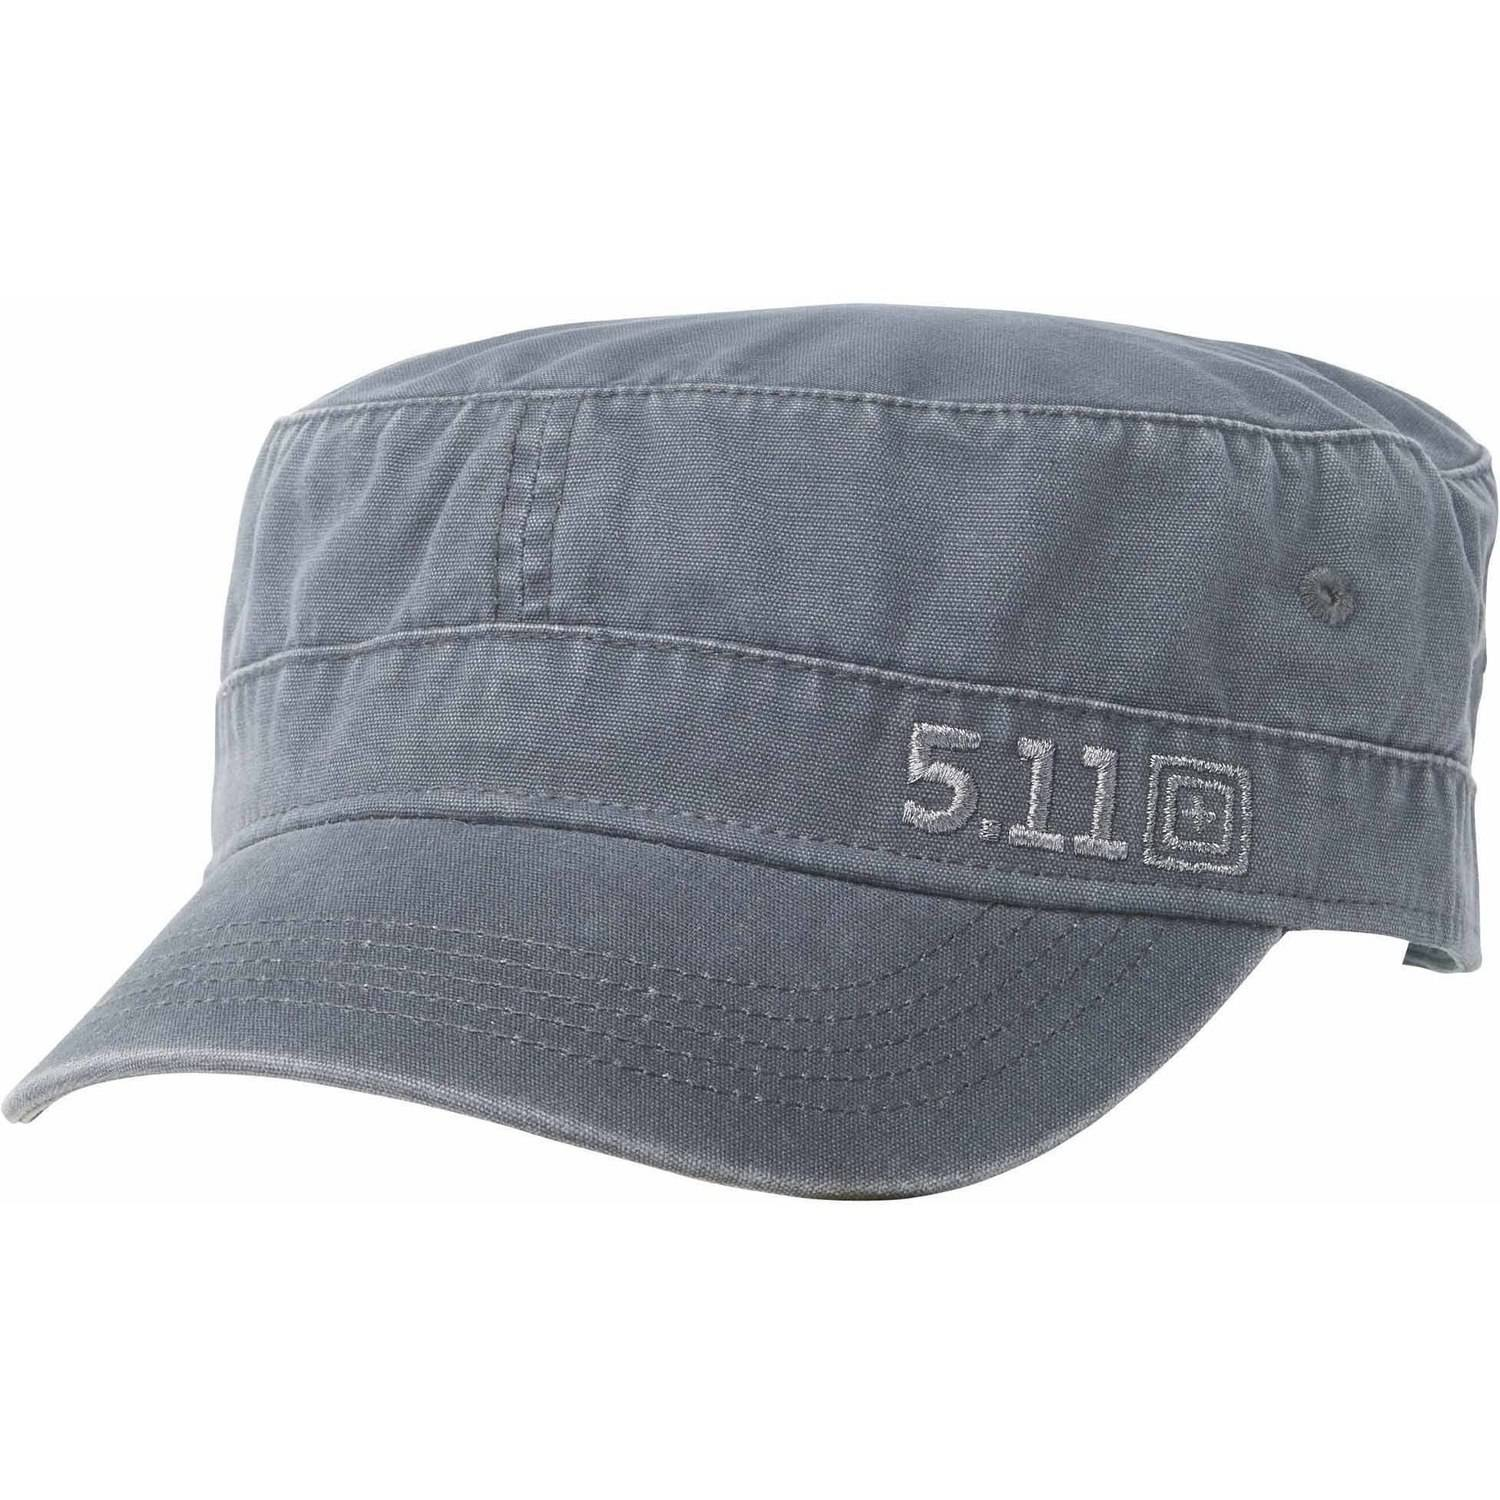 5.11 Tactical Women's Boot Camp Hat, One Size by 5.11 Tactical